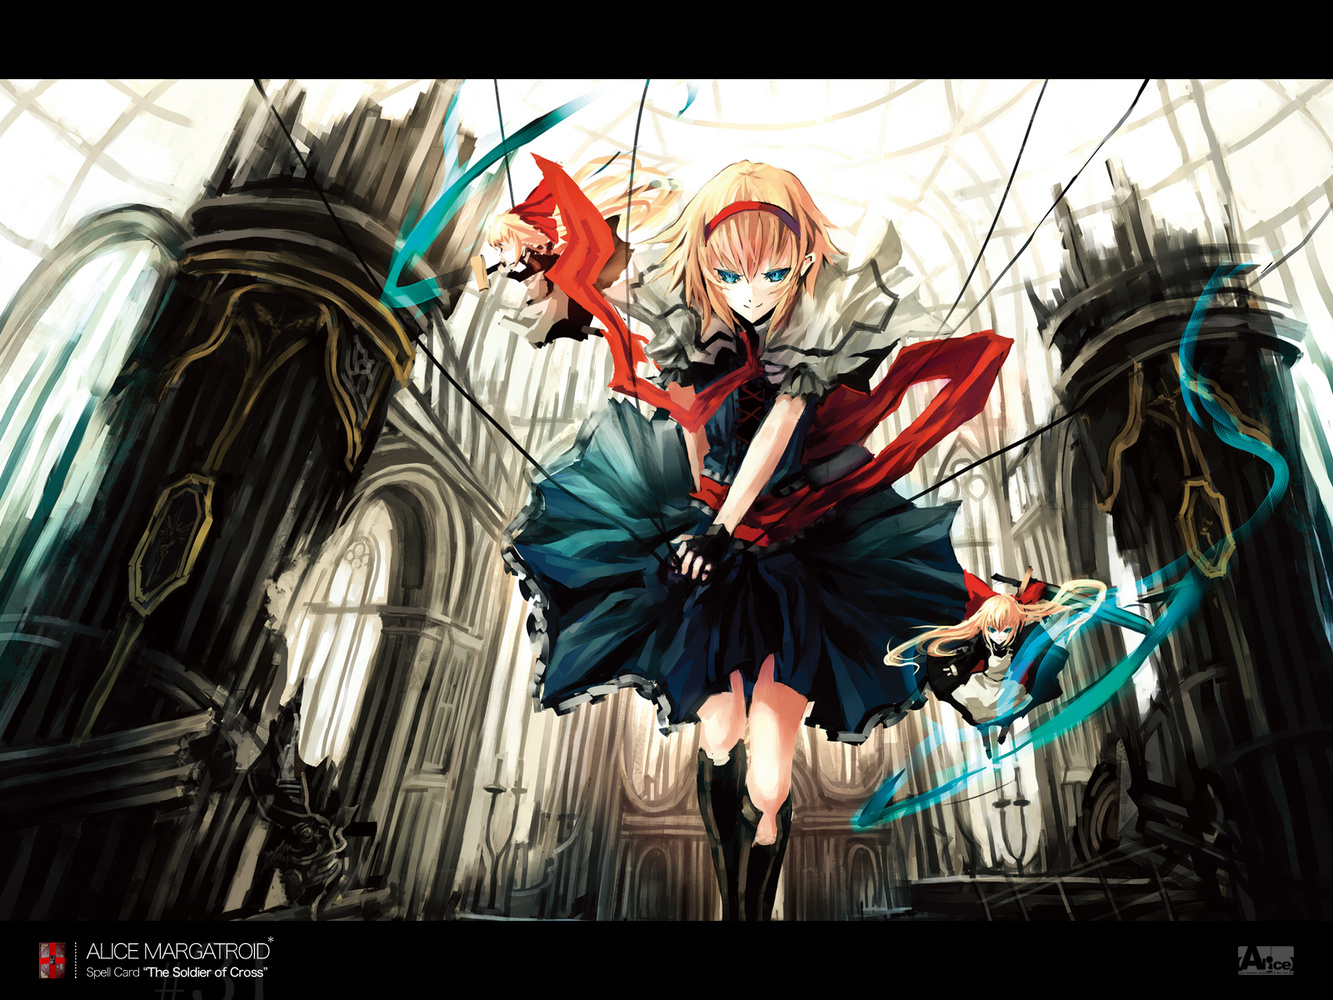 Touhou Project - Страница 2 D9f7acf74576a344eeedf6556ebe5bef